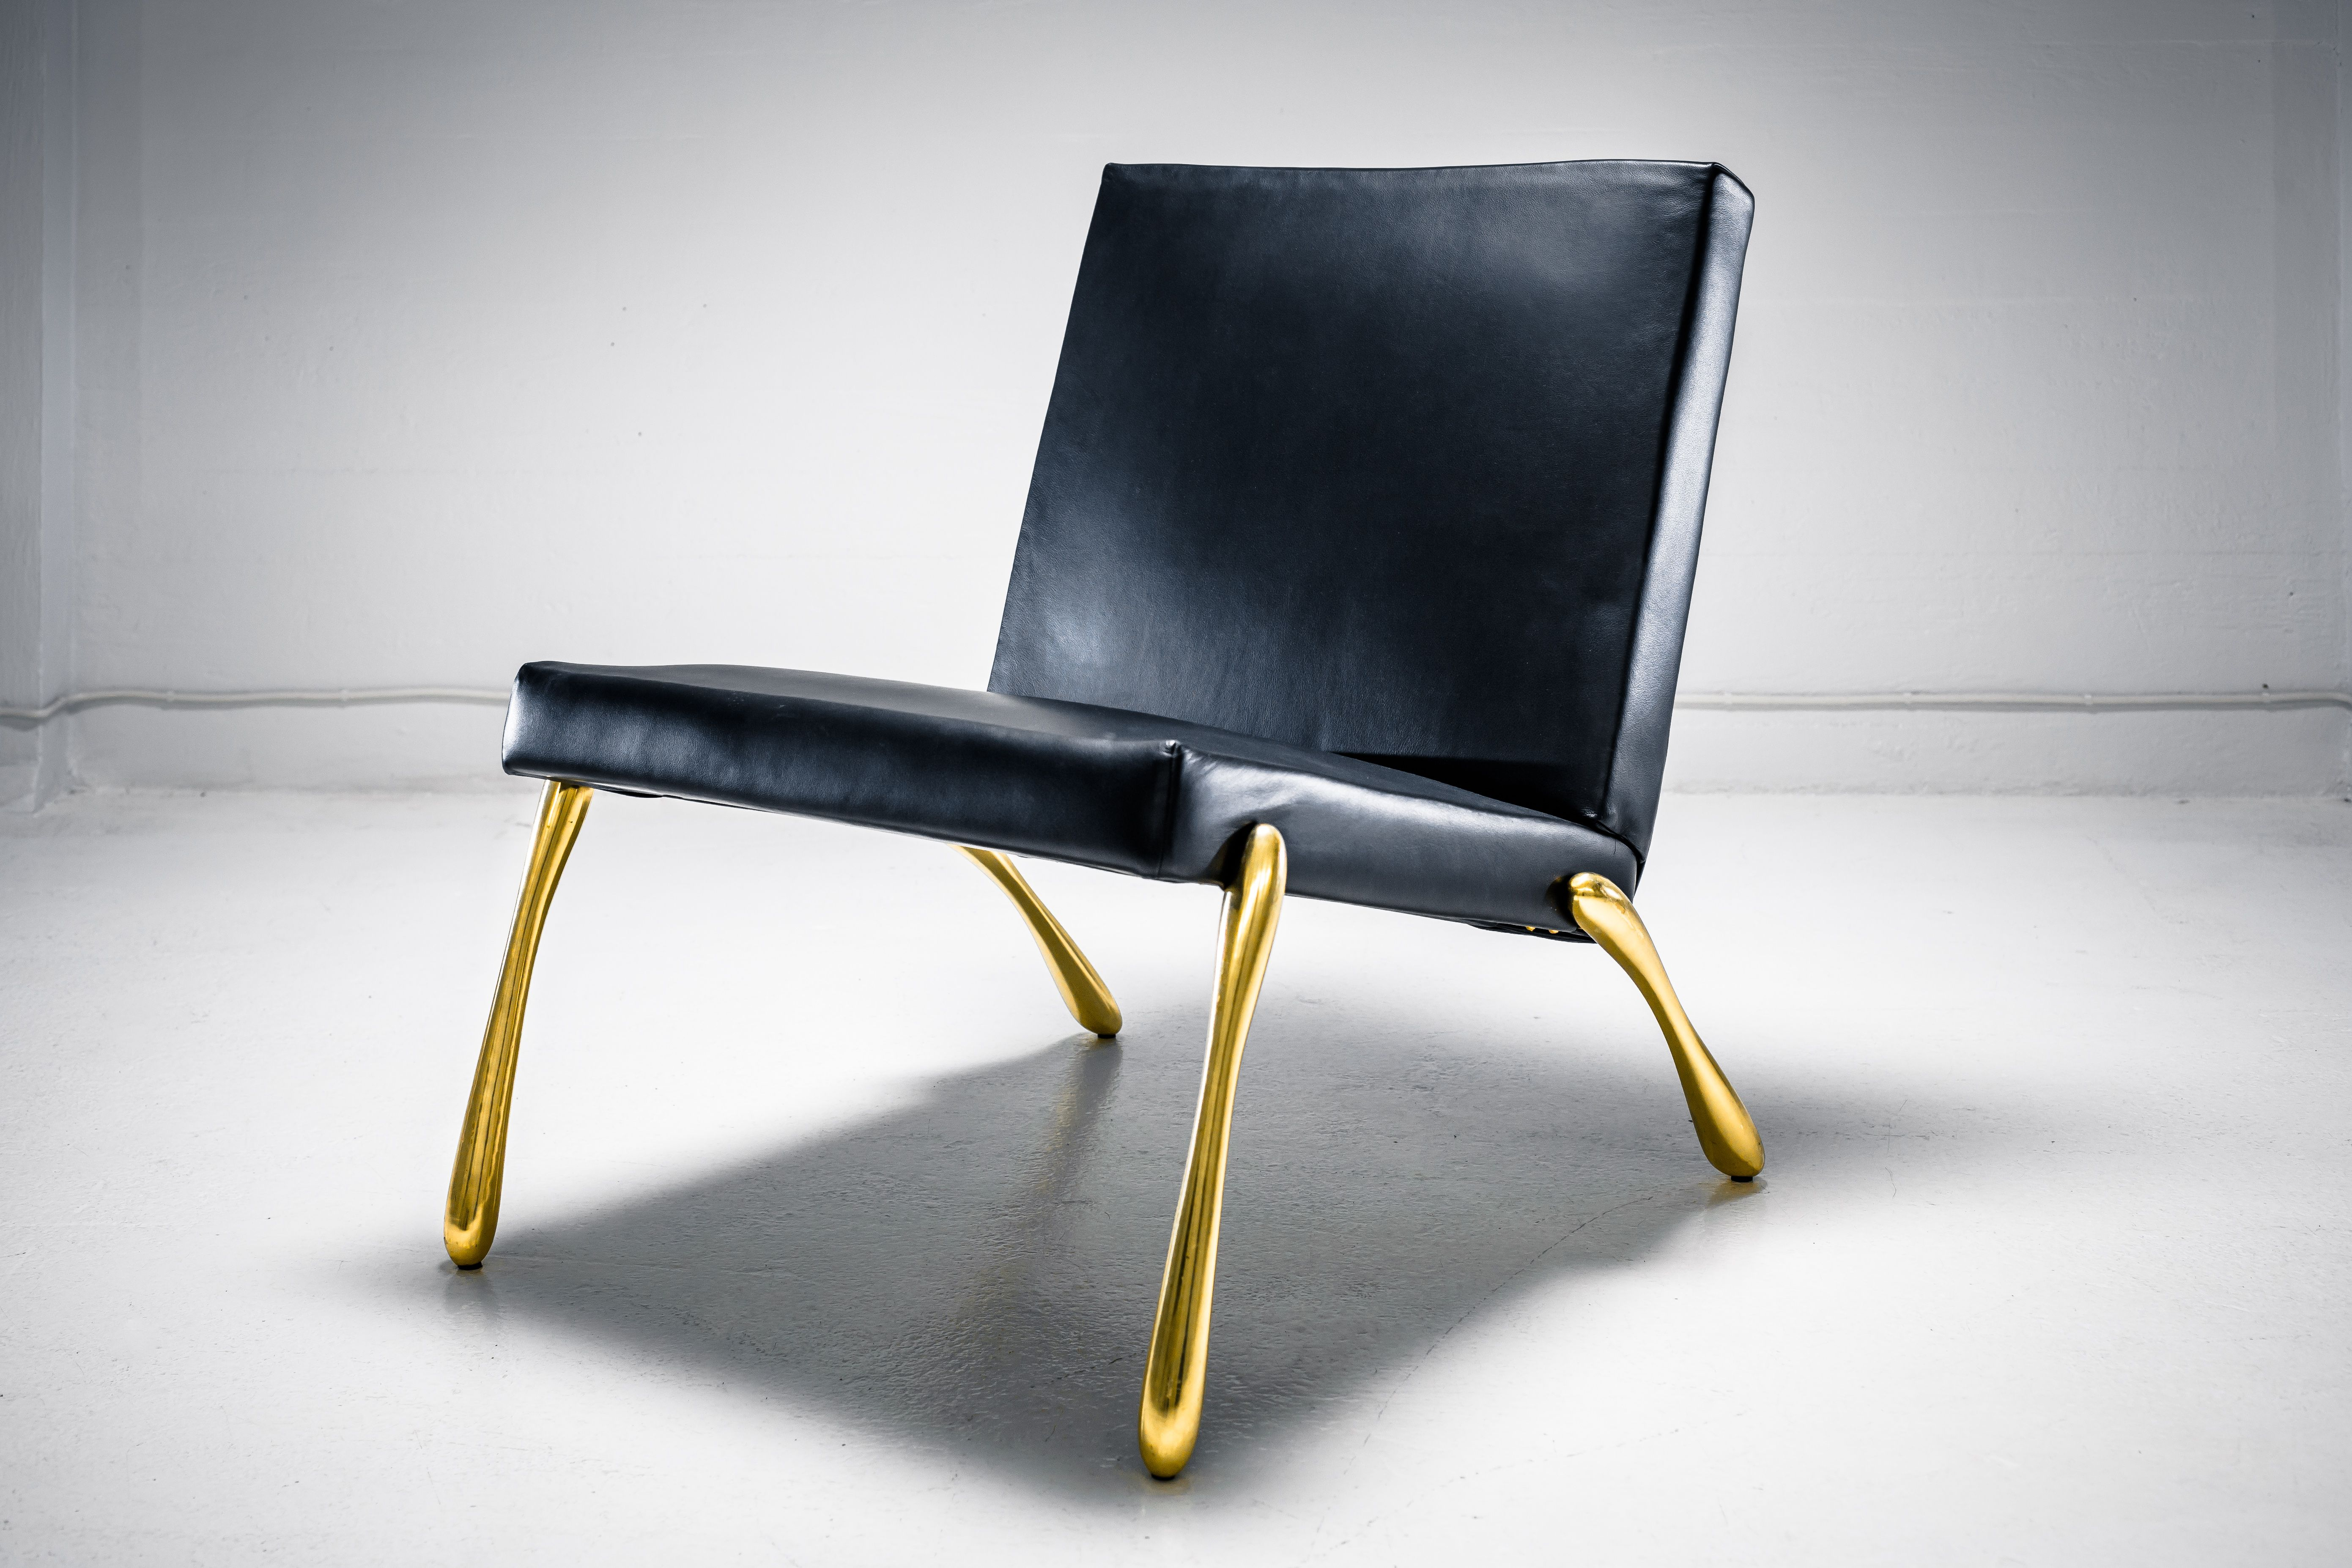 Strange Jeff Lounge Chair By Atelje Sotamaa 3D Printed And Solid Caraccident5 Cool Chair Designs And Ideas Caraccident5Info